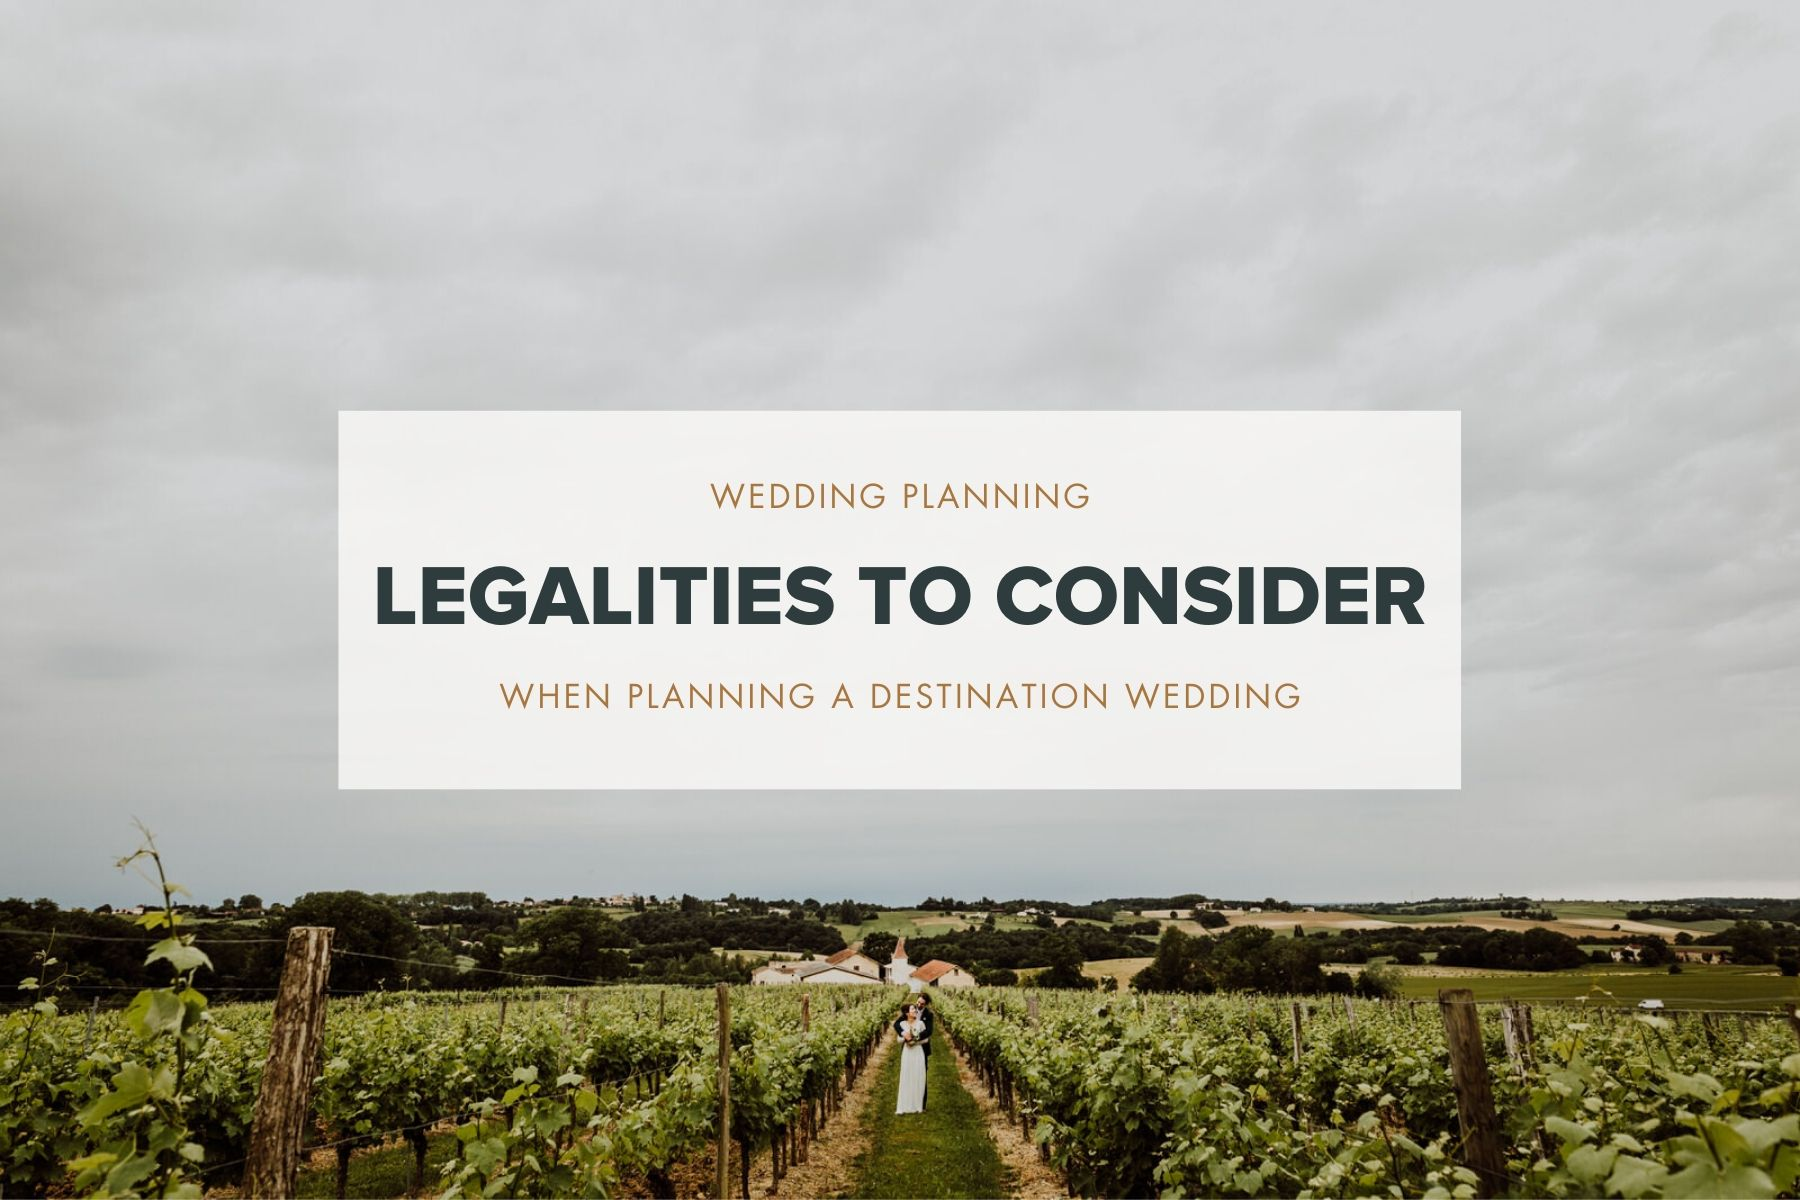 destination wedding legalities